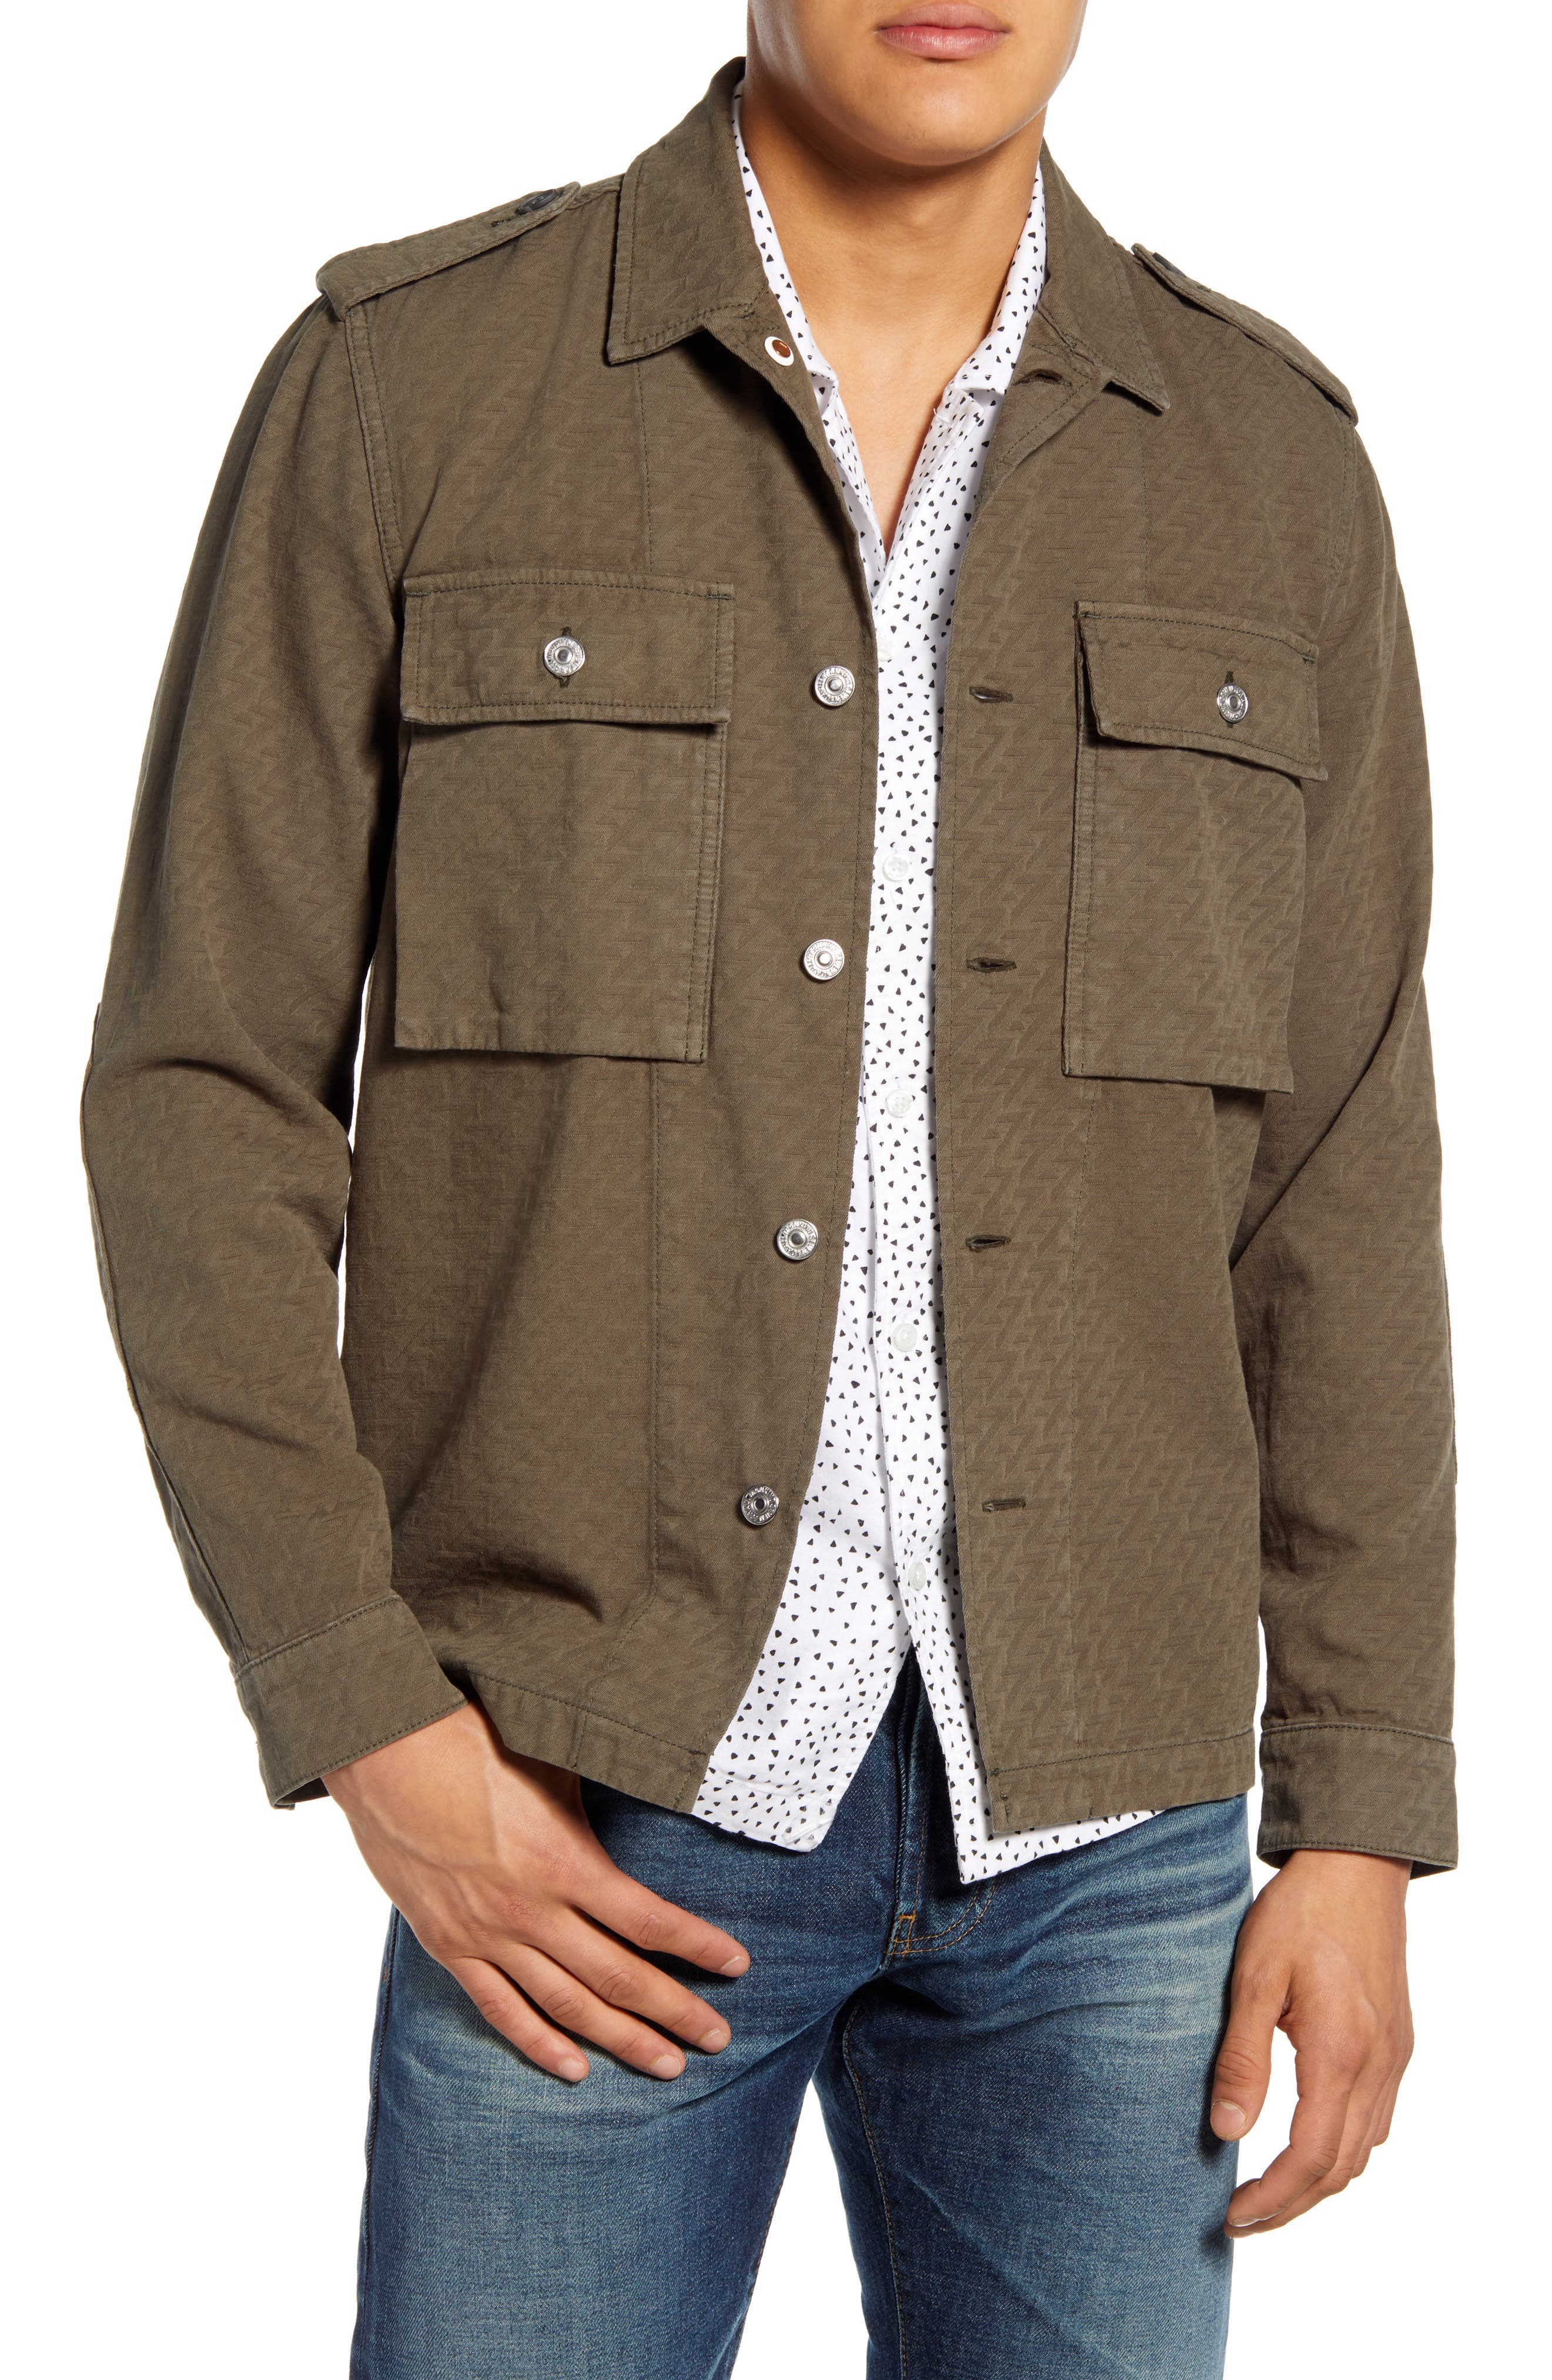 Image of 7 For All Mankind Zigzag Jacquard Military Shirt Jacket